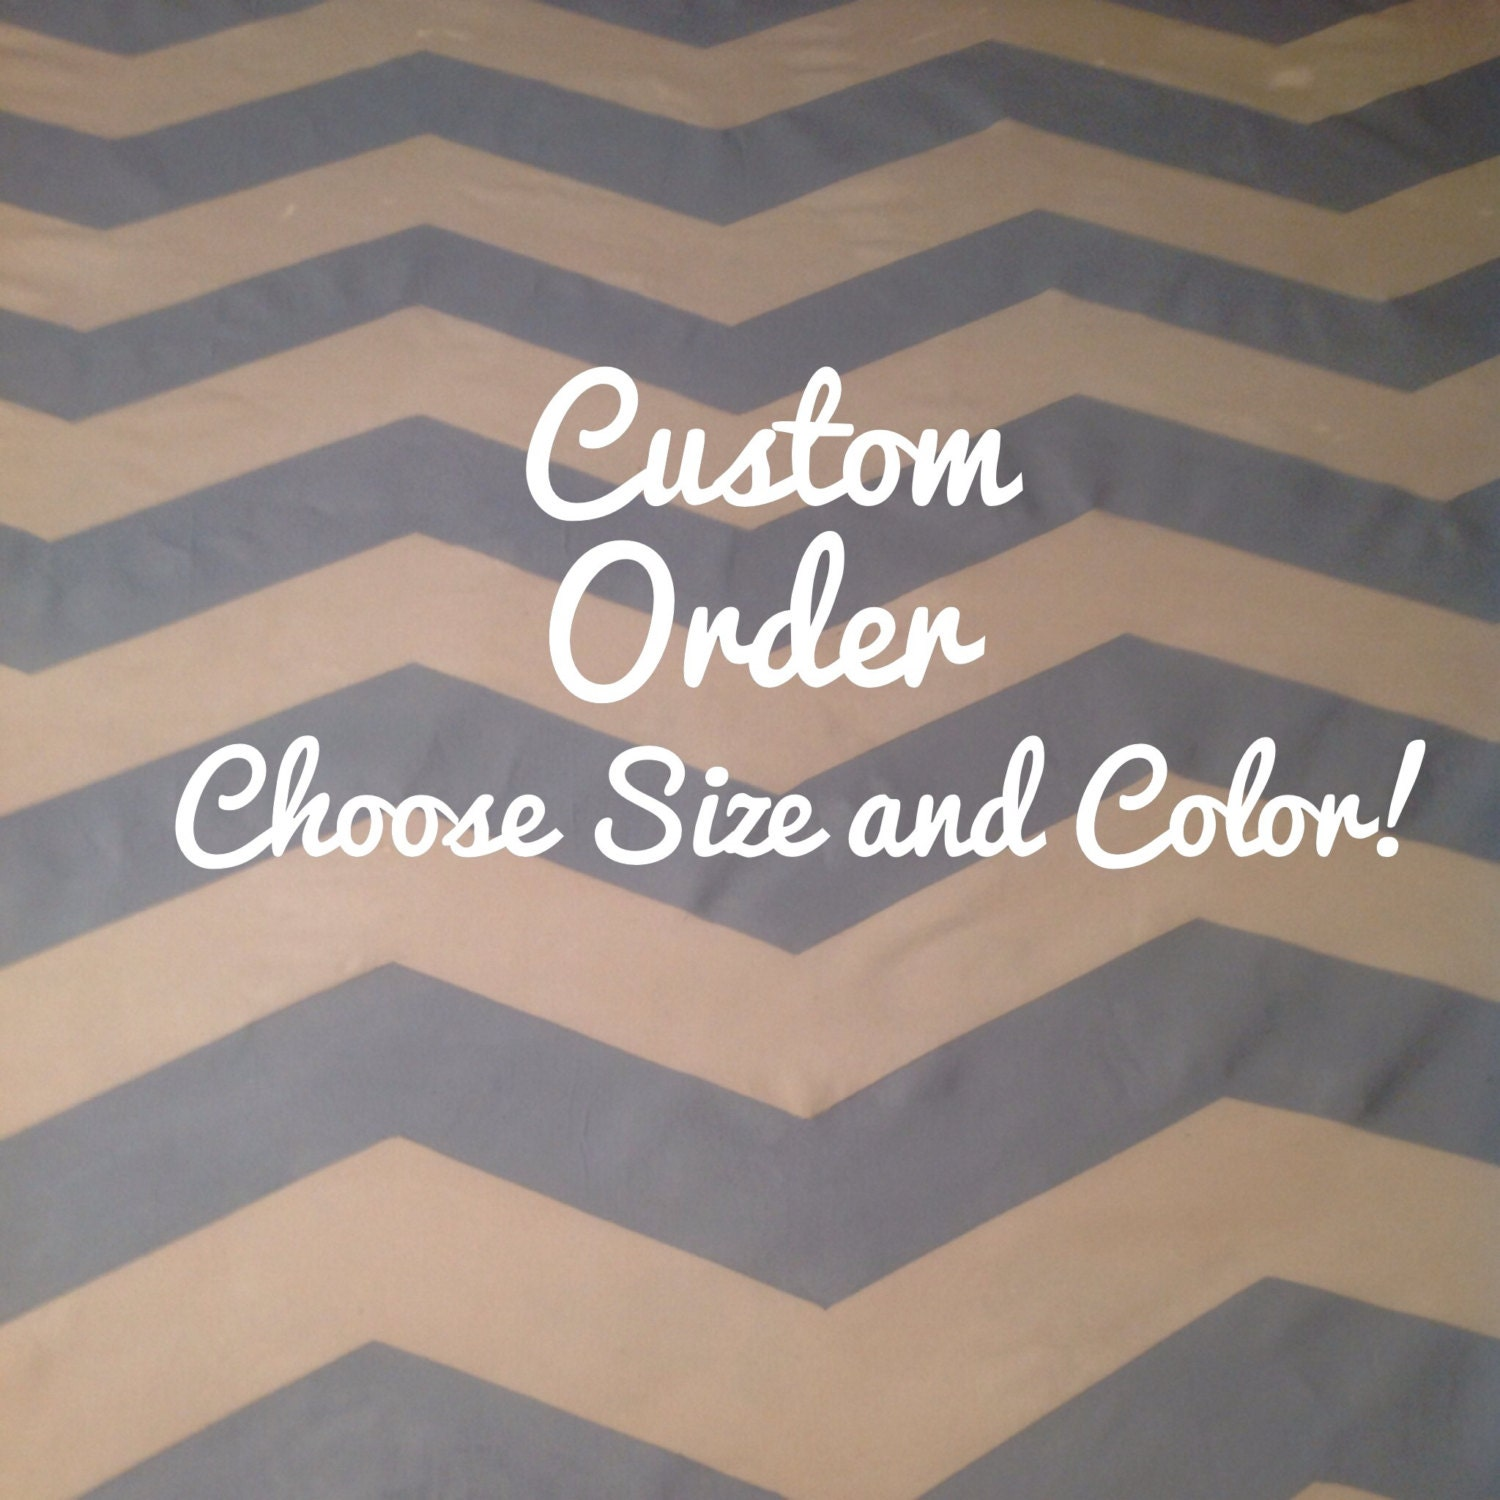 Custom area rug chevron rug floor rug rugs by for Choosing a rug color